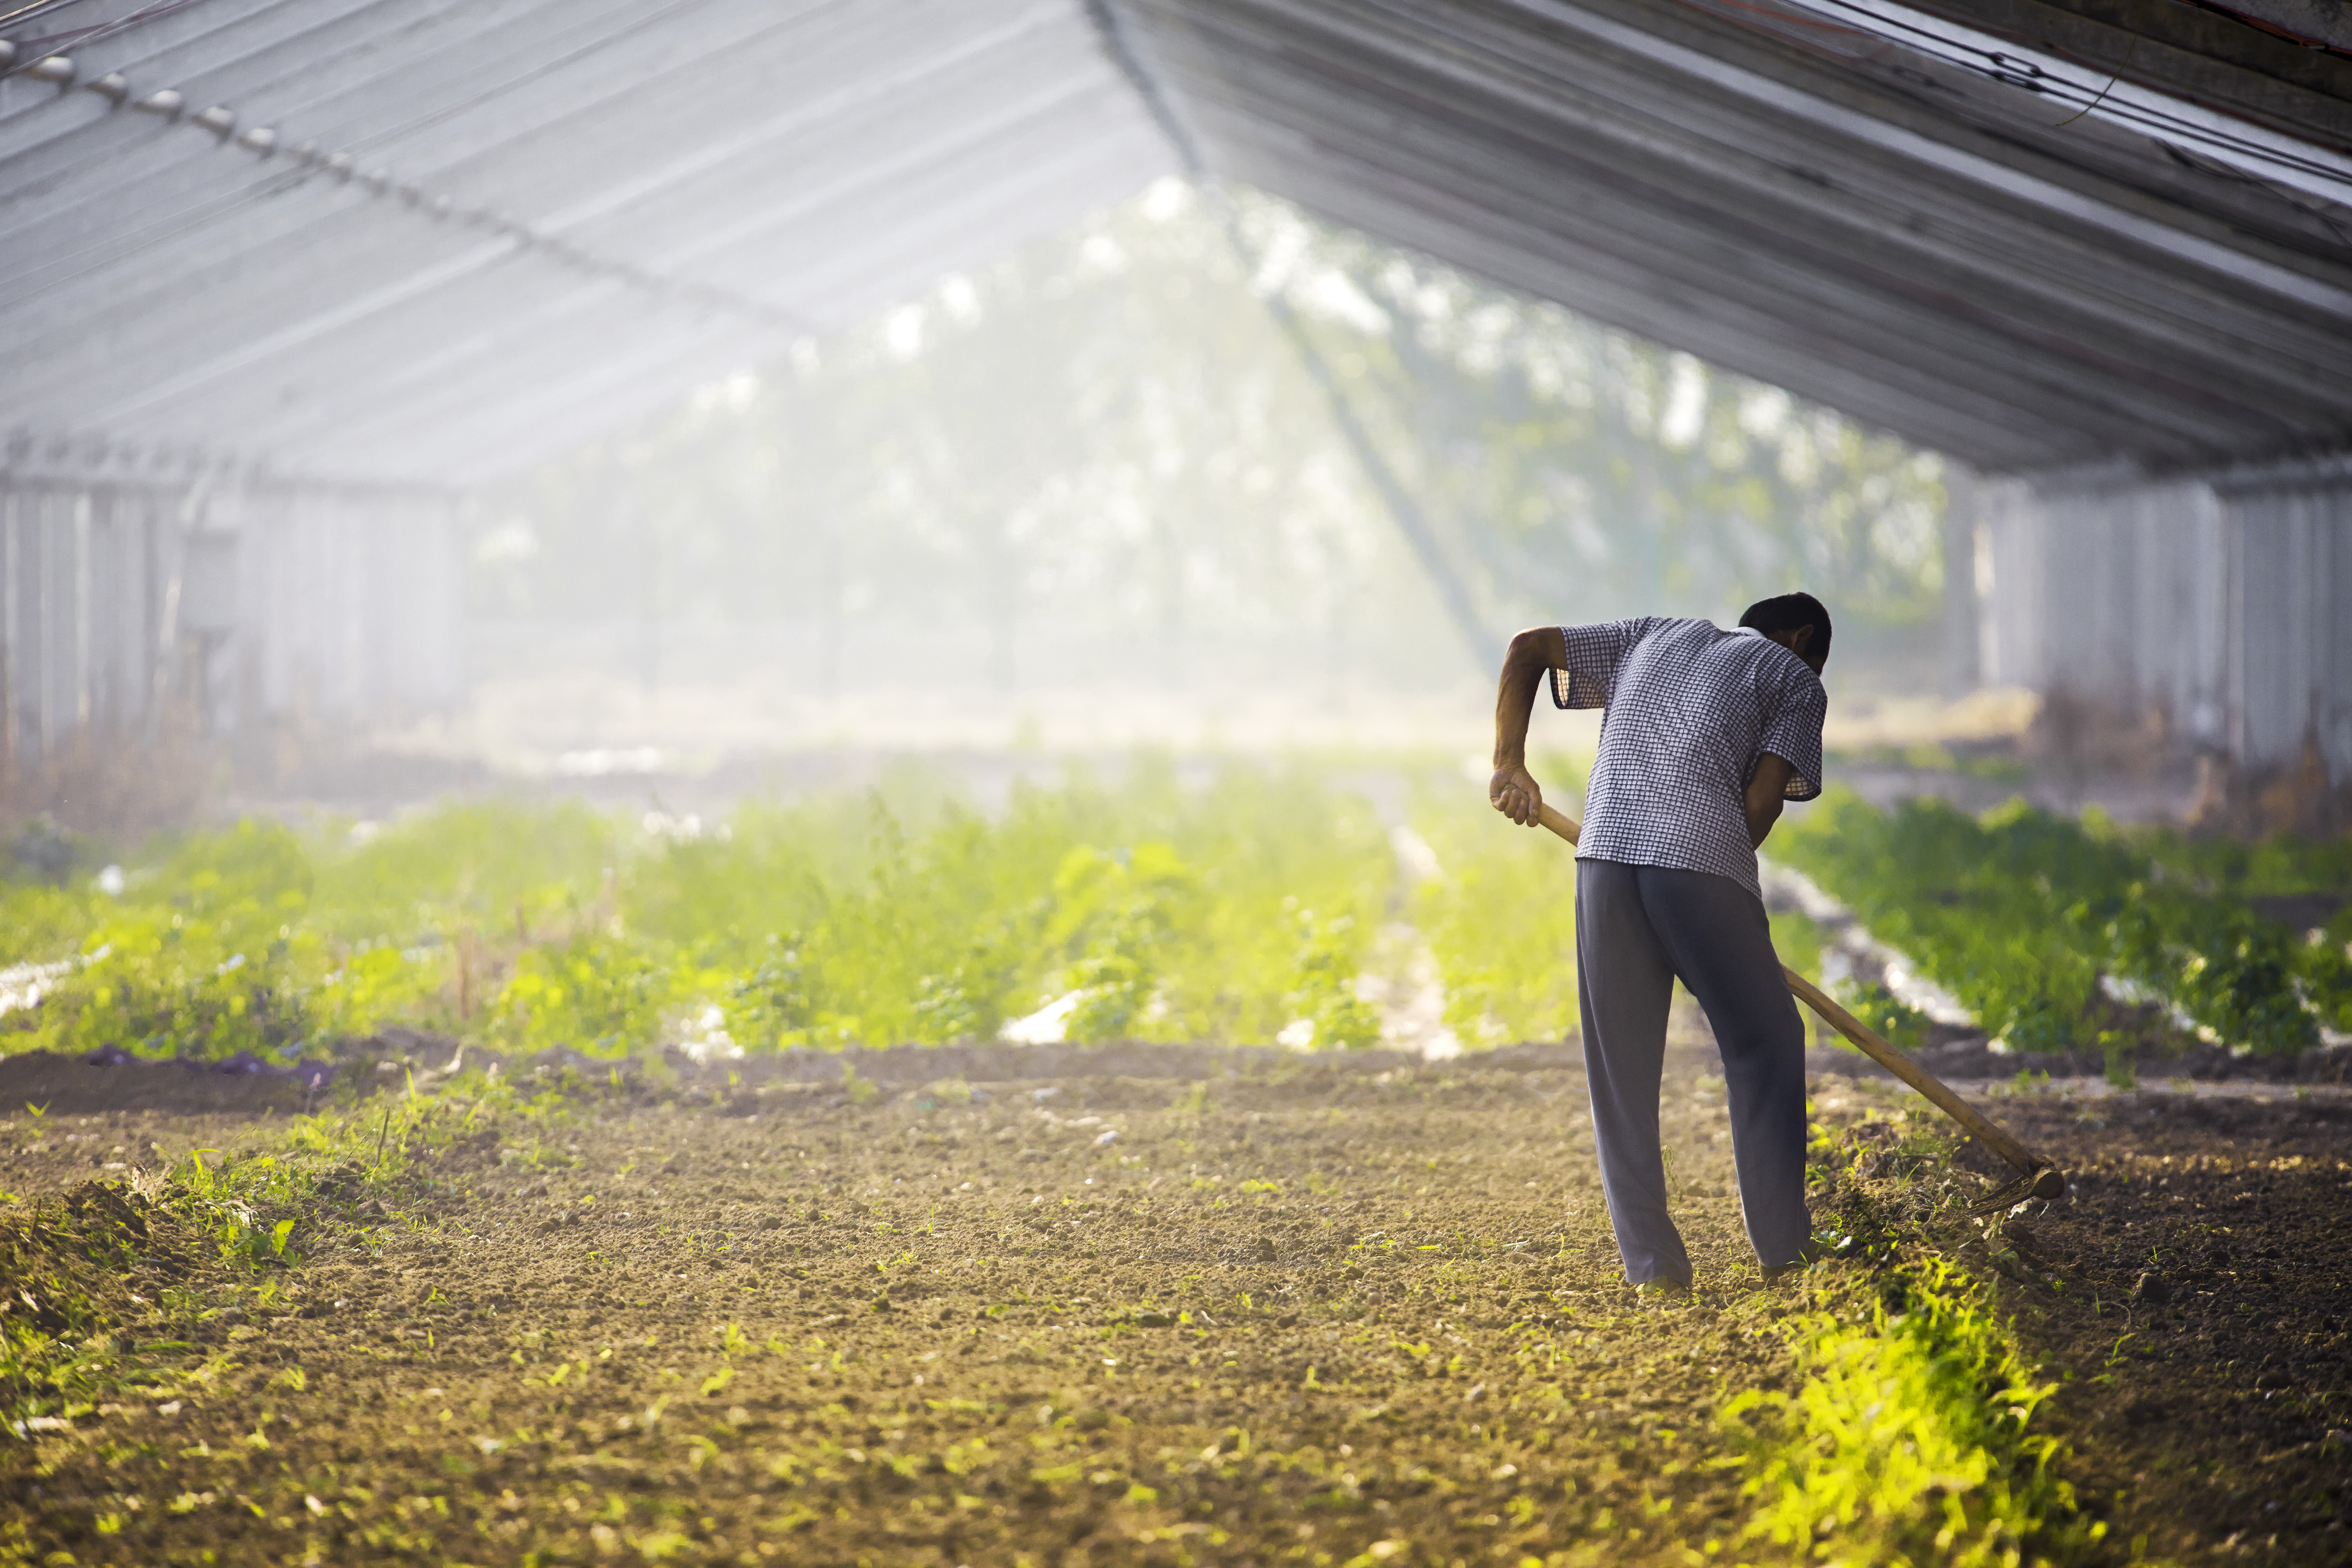 A farm worker tends to crops in a large greenhouse.